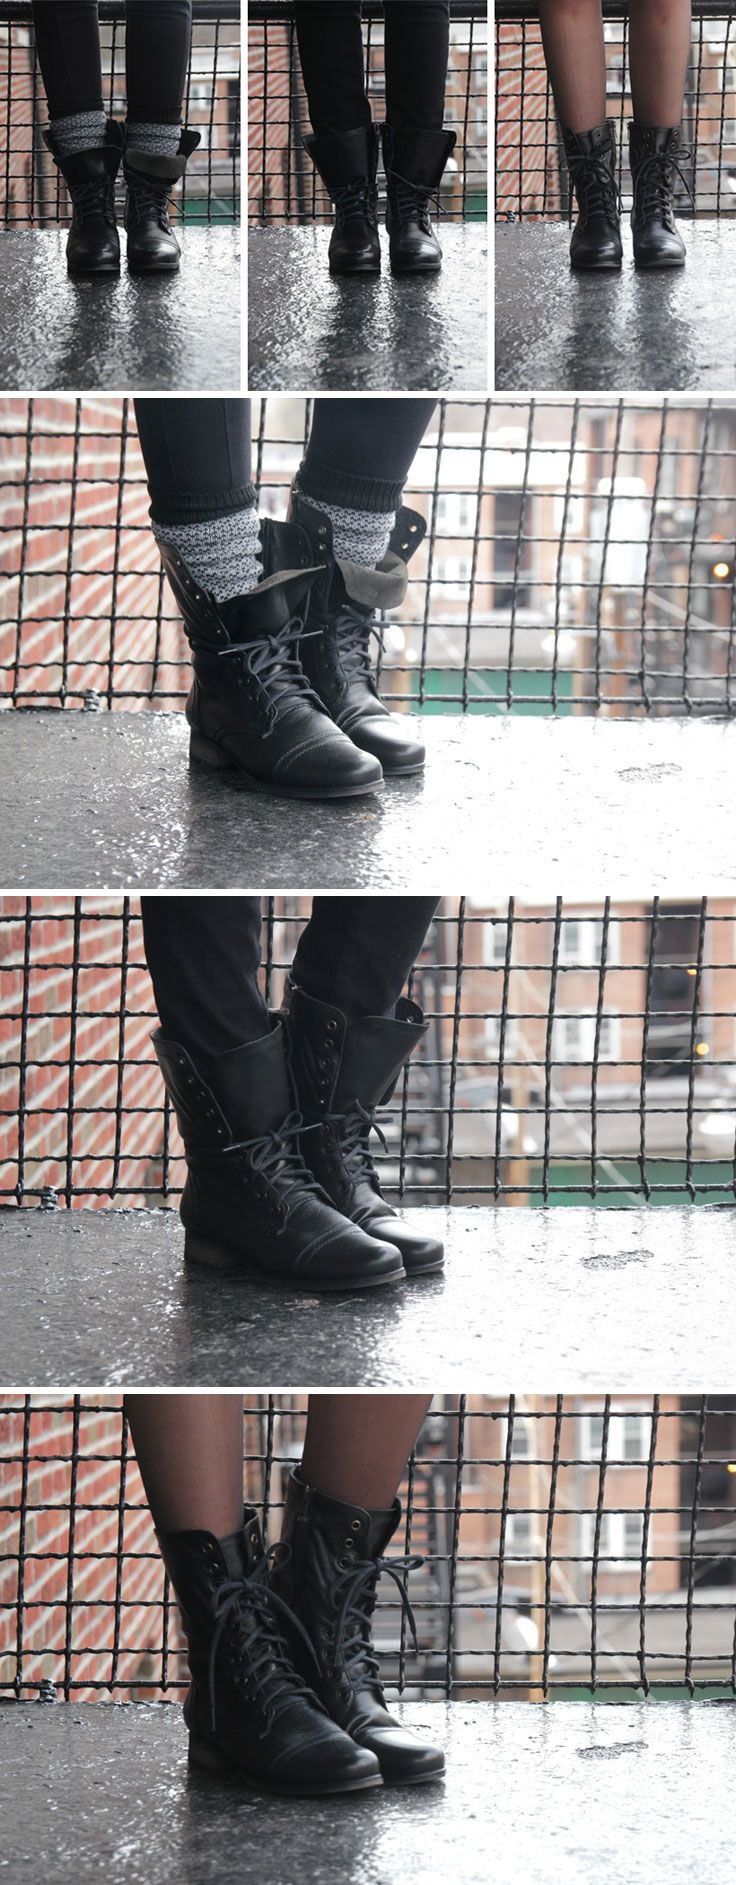 Steve Madden Troopa boots worn 3 ways